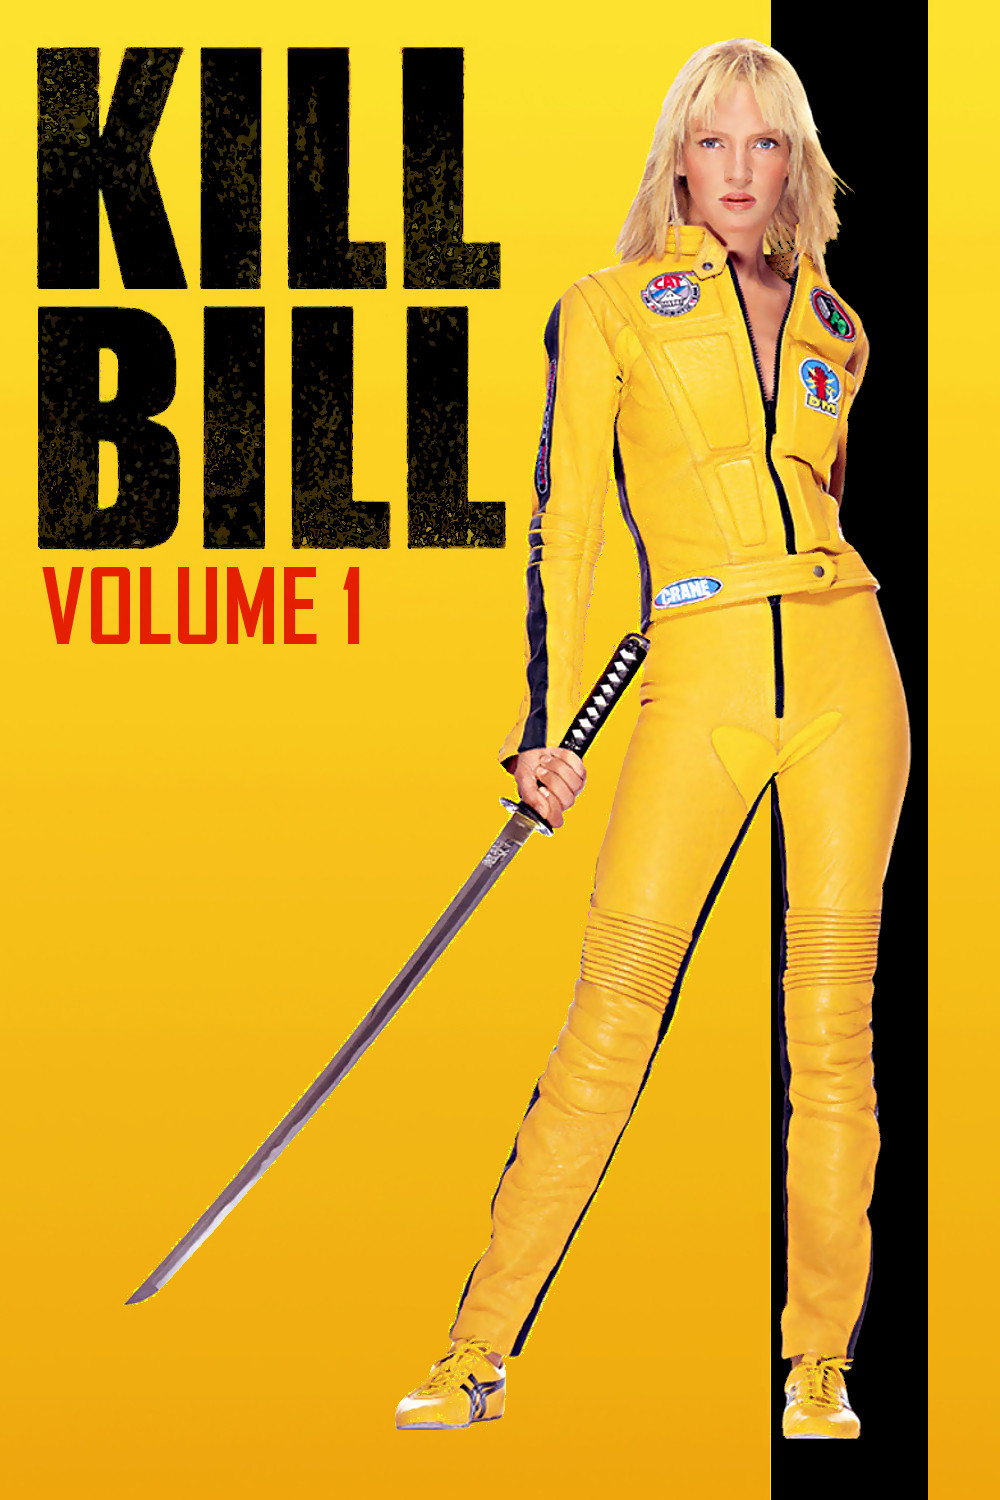 'kill bill vol 1' 2003 Nonton film kill bill: vol 1 (2003) bluray 480p & 720p mp4 mkv hindi english sub watch online frindoee streaming full hd movie download lktv21 indoxxi.